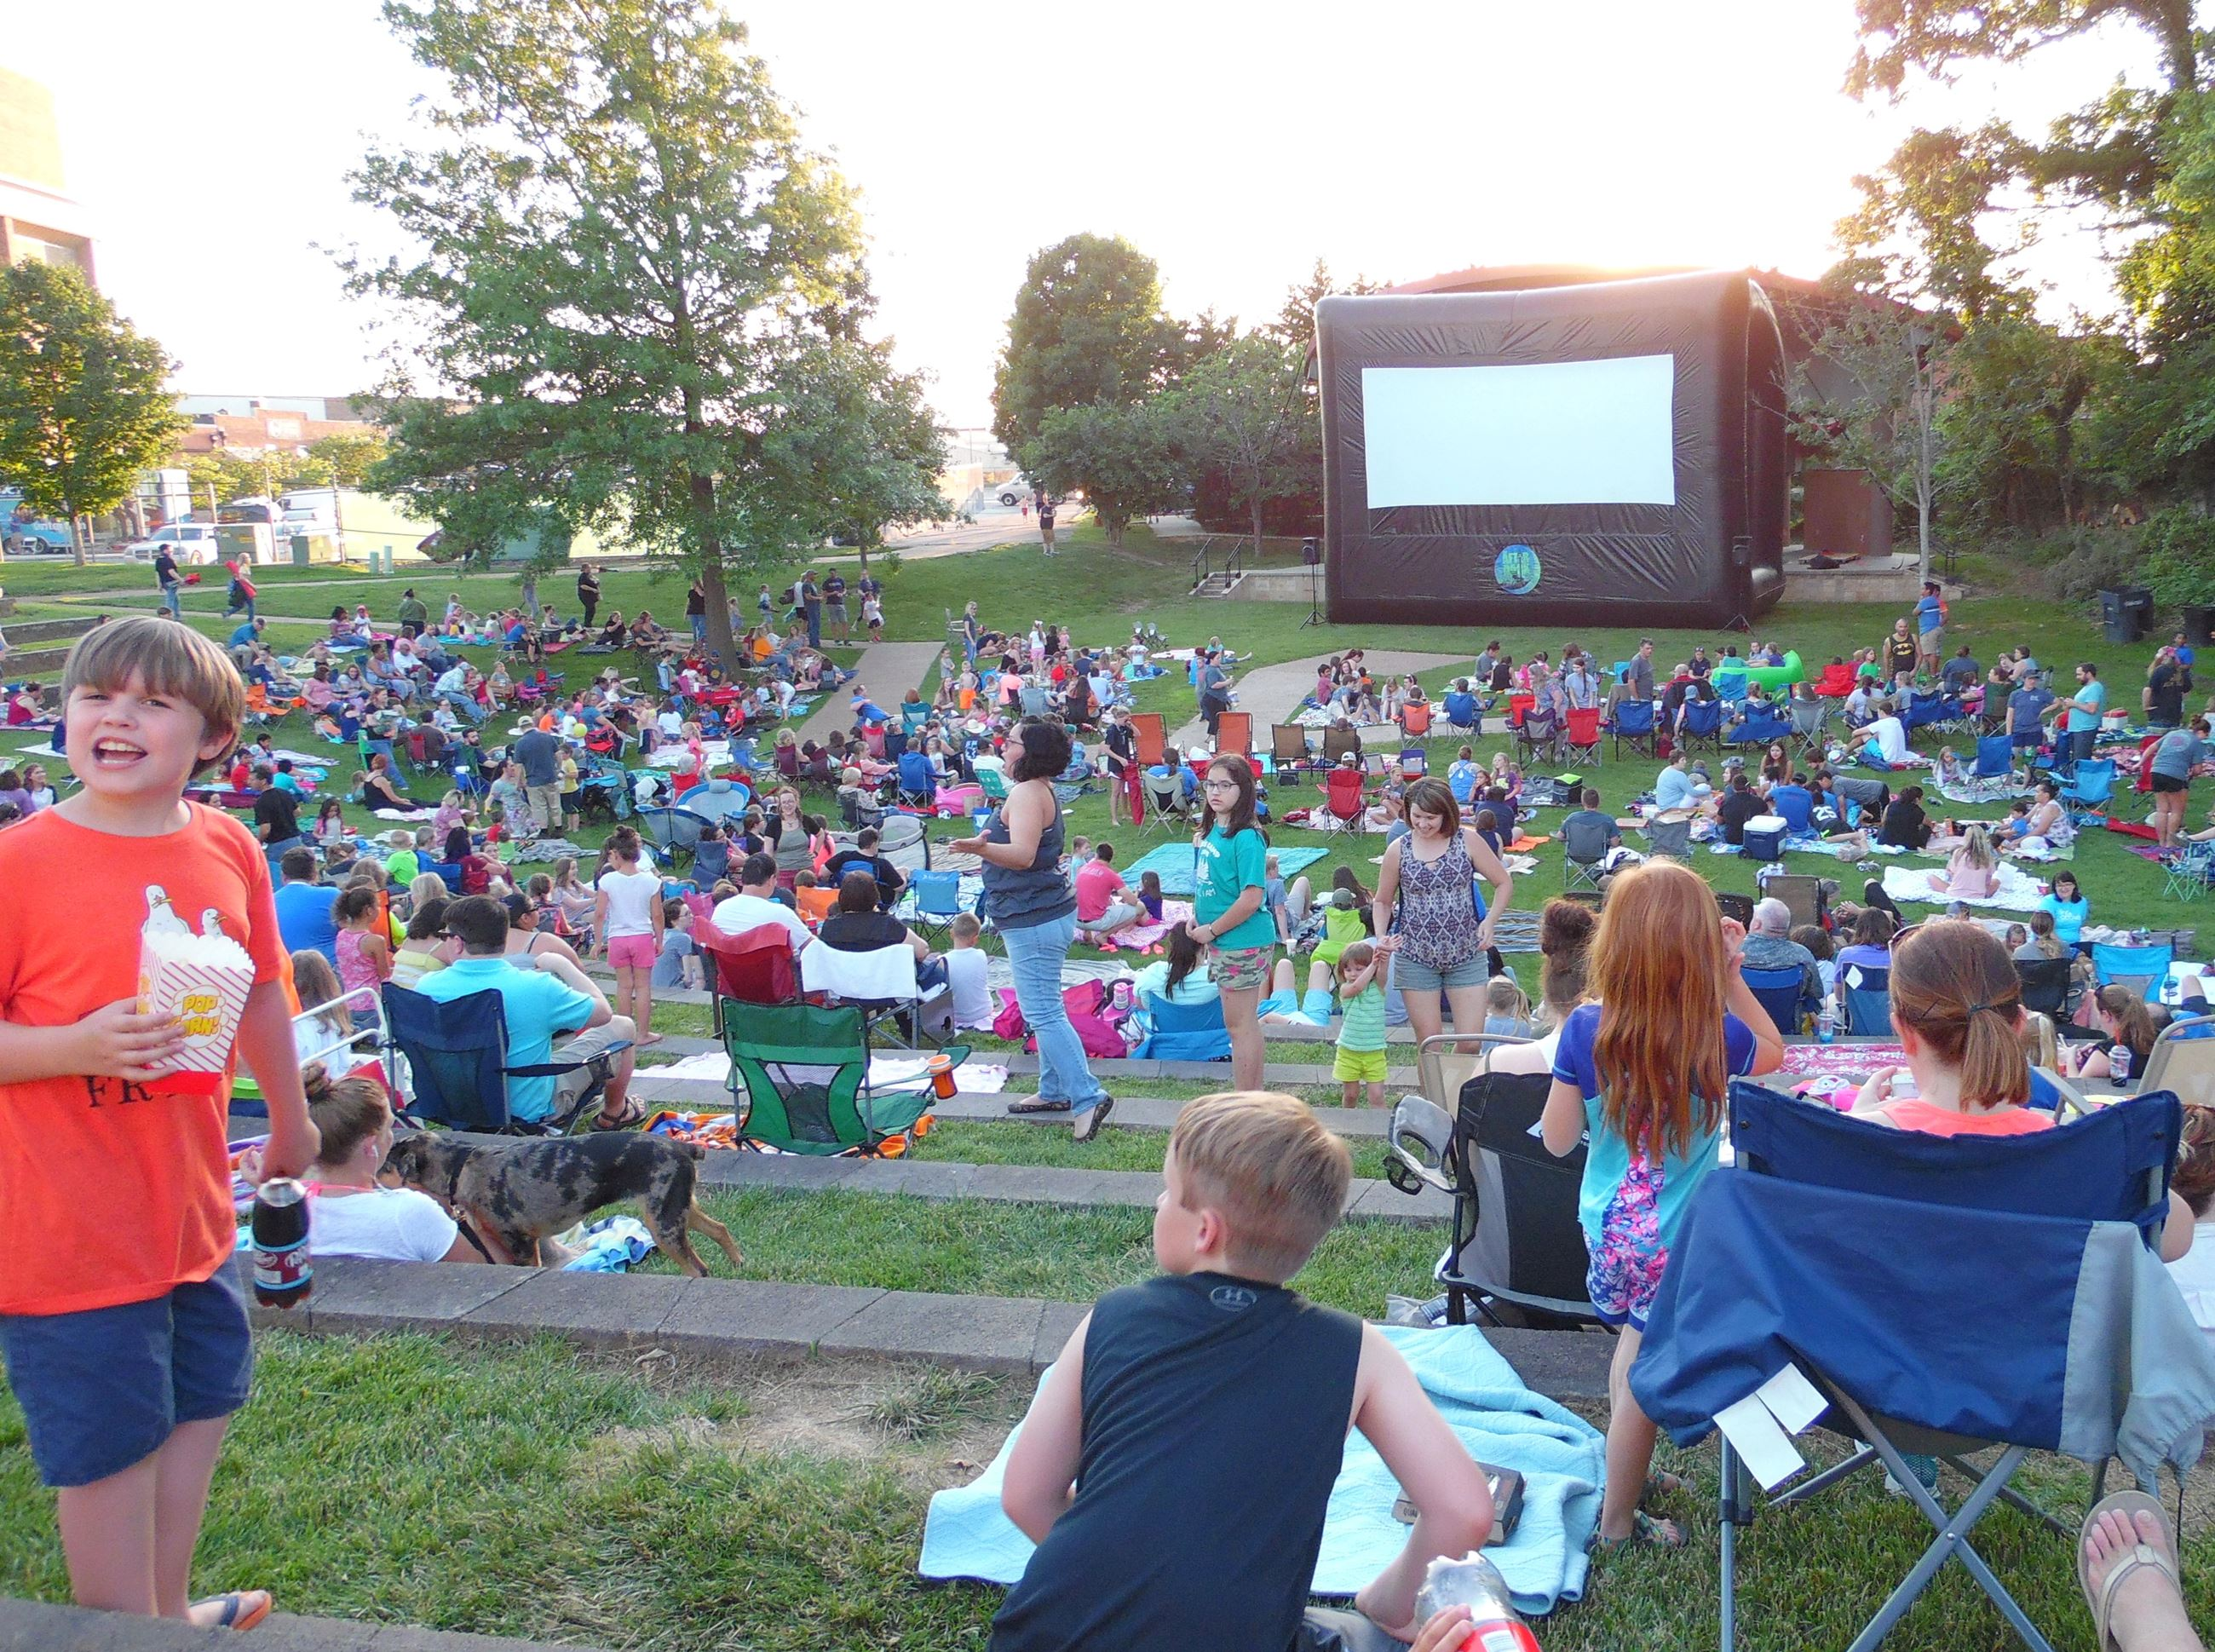 A crowd gathers at Dogwood Park for After Dark Movies in the Park.